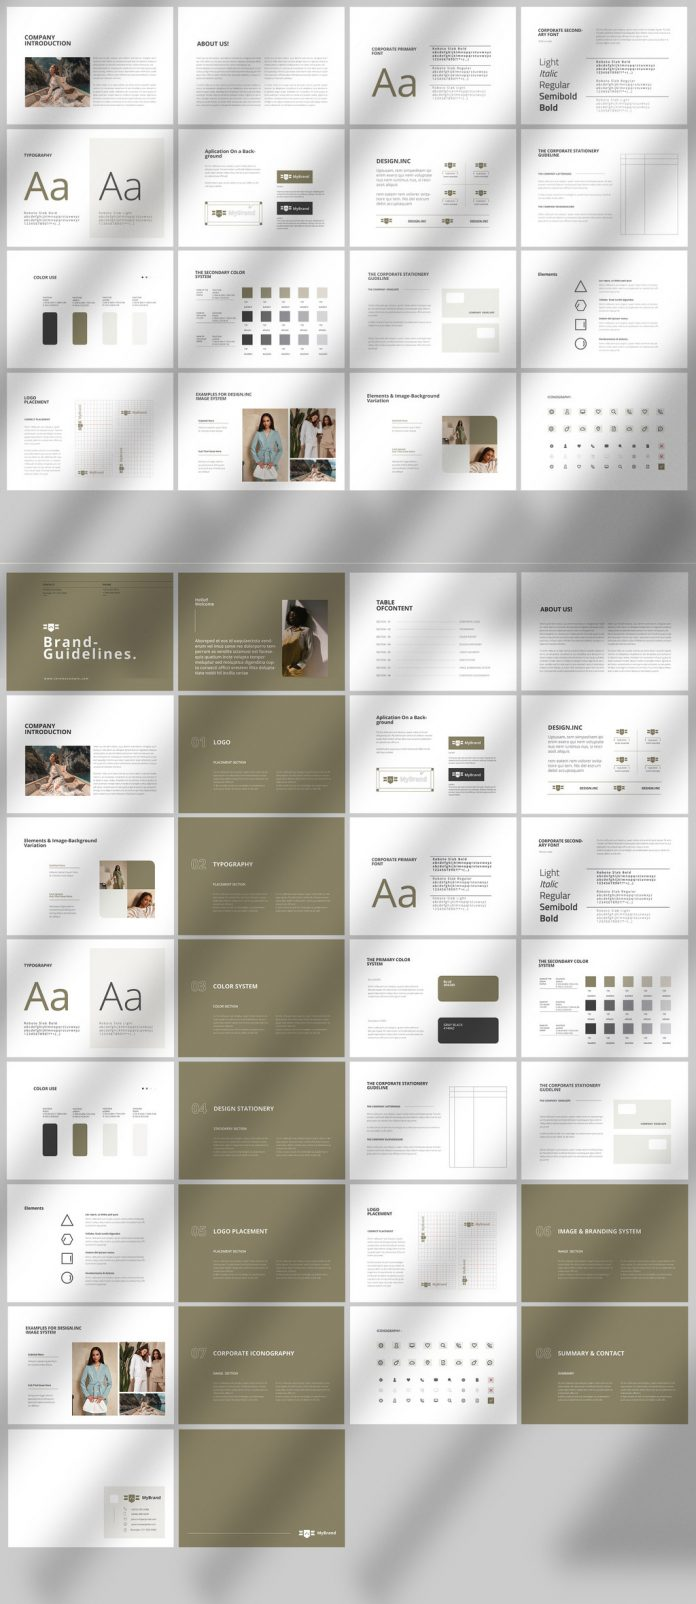 Brand Identity Guidelines Brochure Template for Adobe InDesign